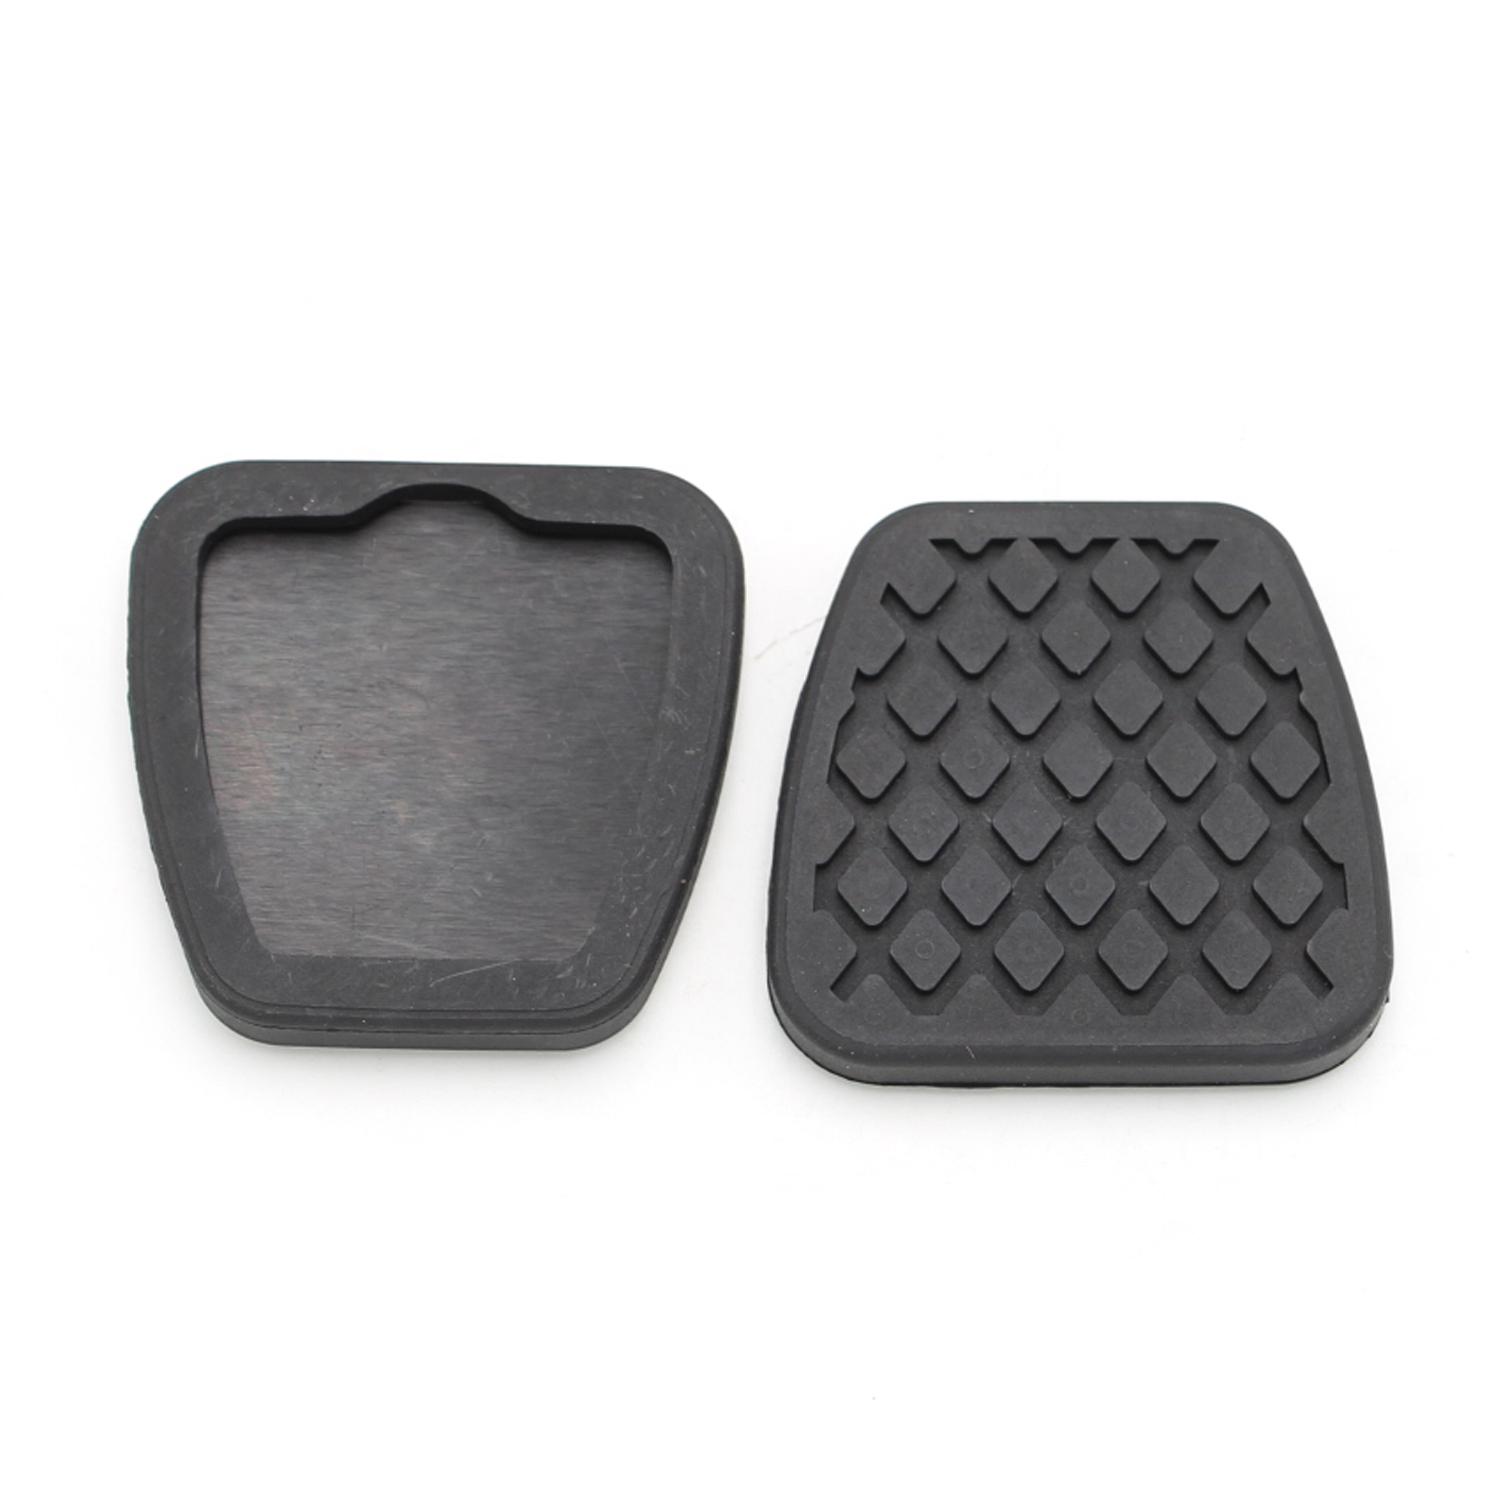 2PCS Brake Clutch Pedal Pad Rubber Covers Fits For Honda